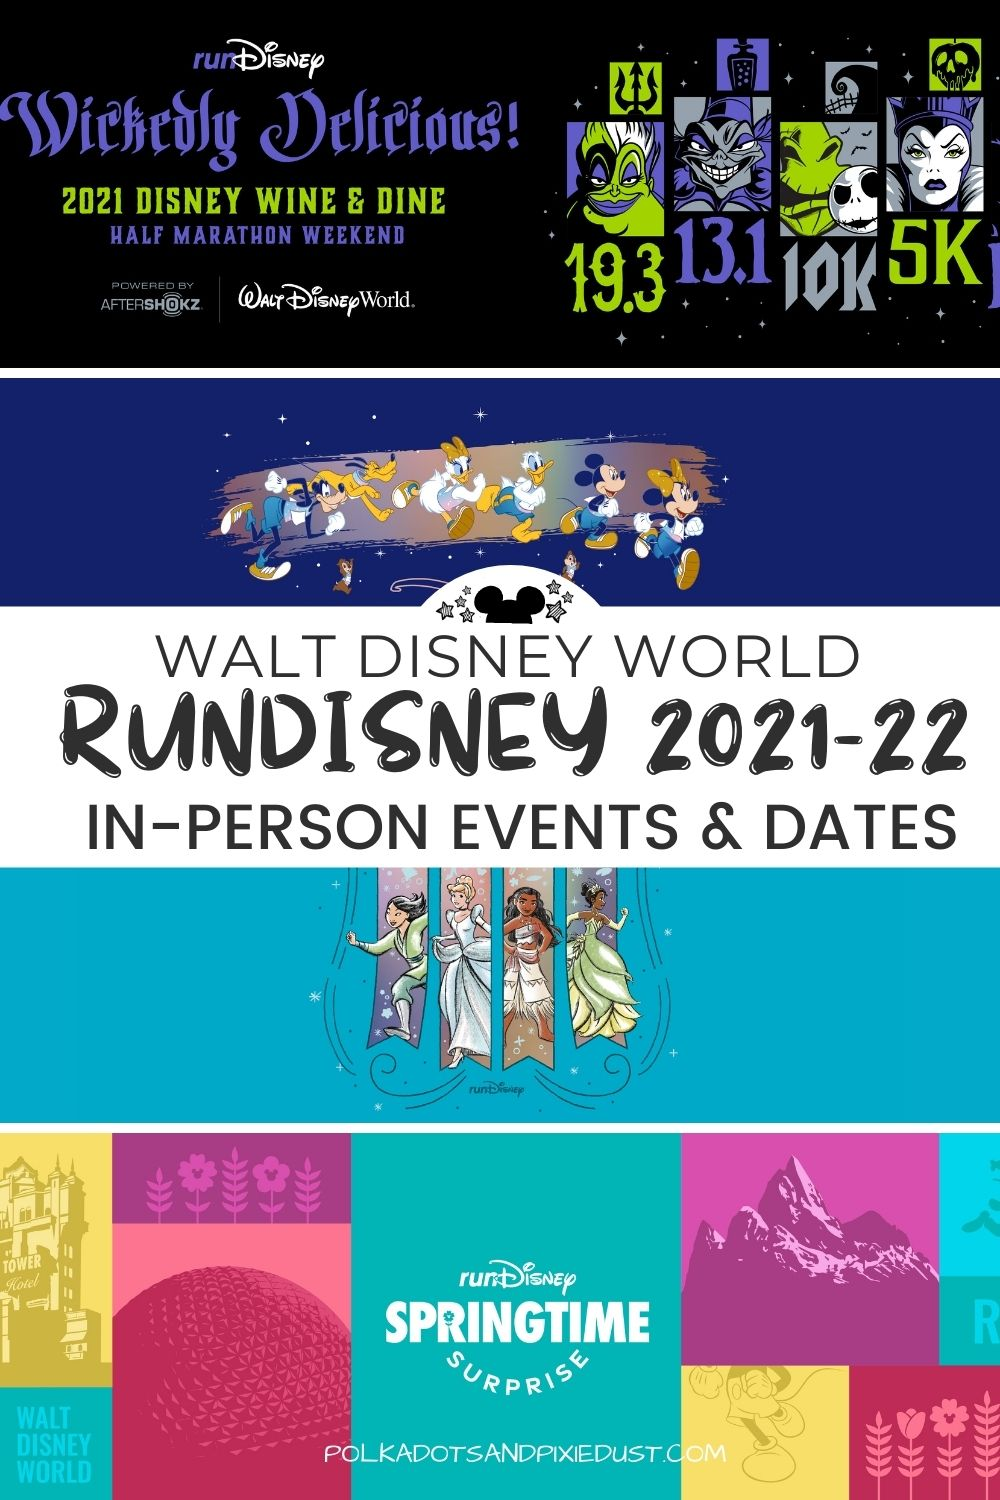 runDisney has just announced 2021 and 2022 in person dates for Walt Disney World marathons! Plus a brand new event in spring 2022. #polkadotpxies #rundisney #disney2022